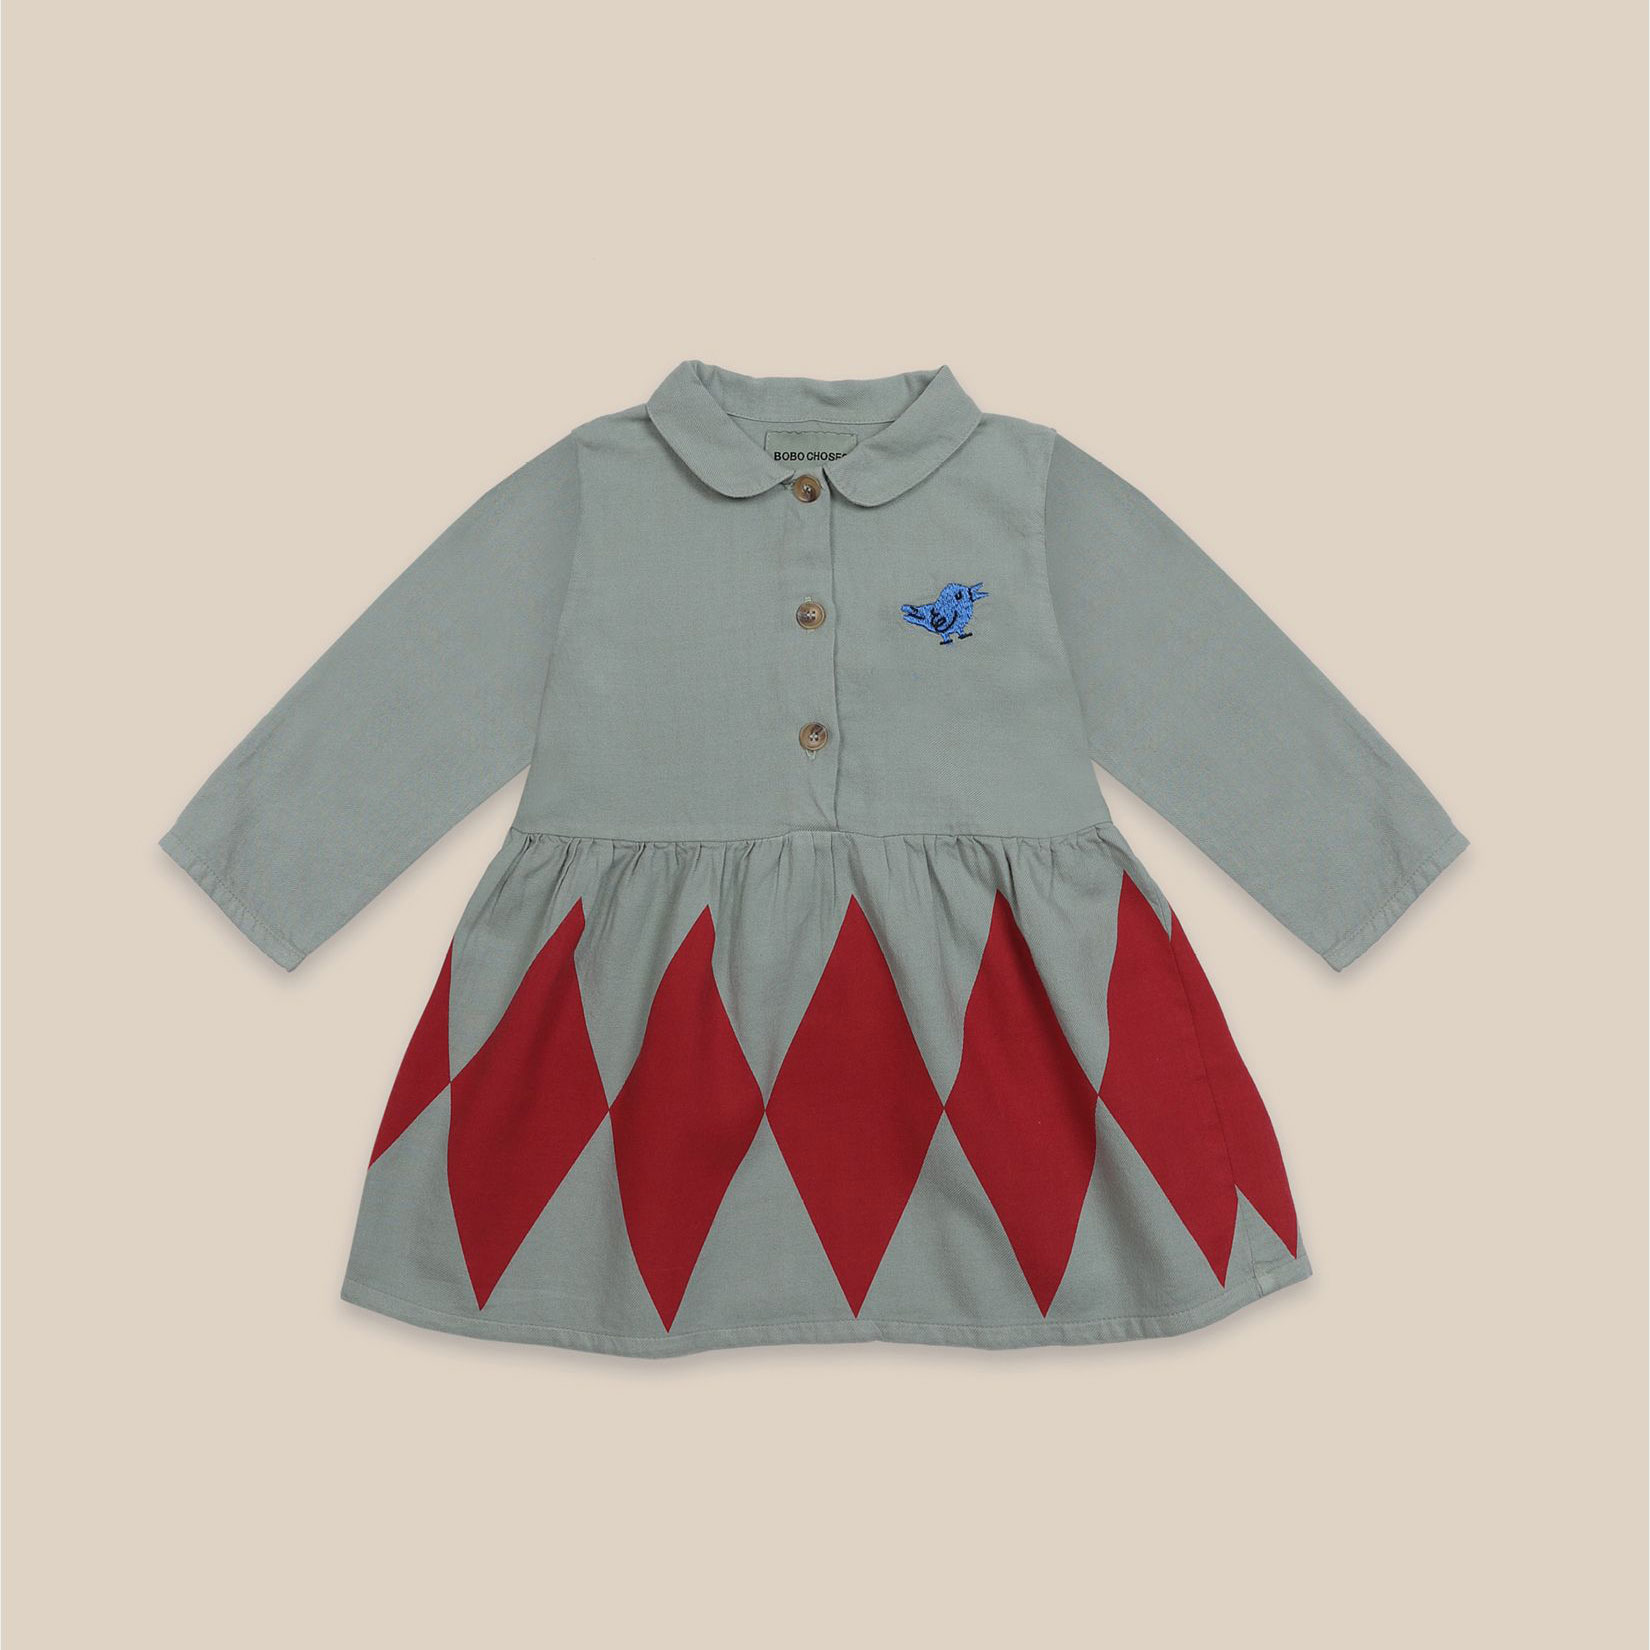 Bobo Choses - Baby Diamonds Princess Dress